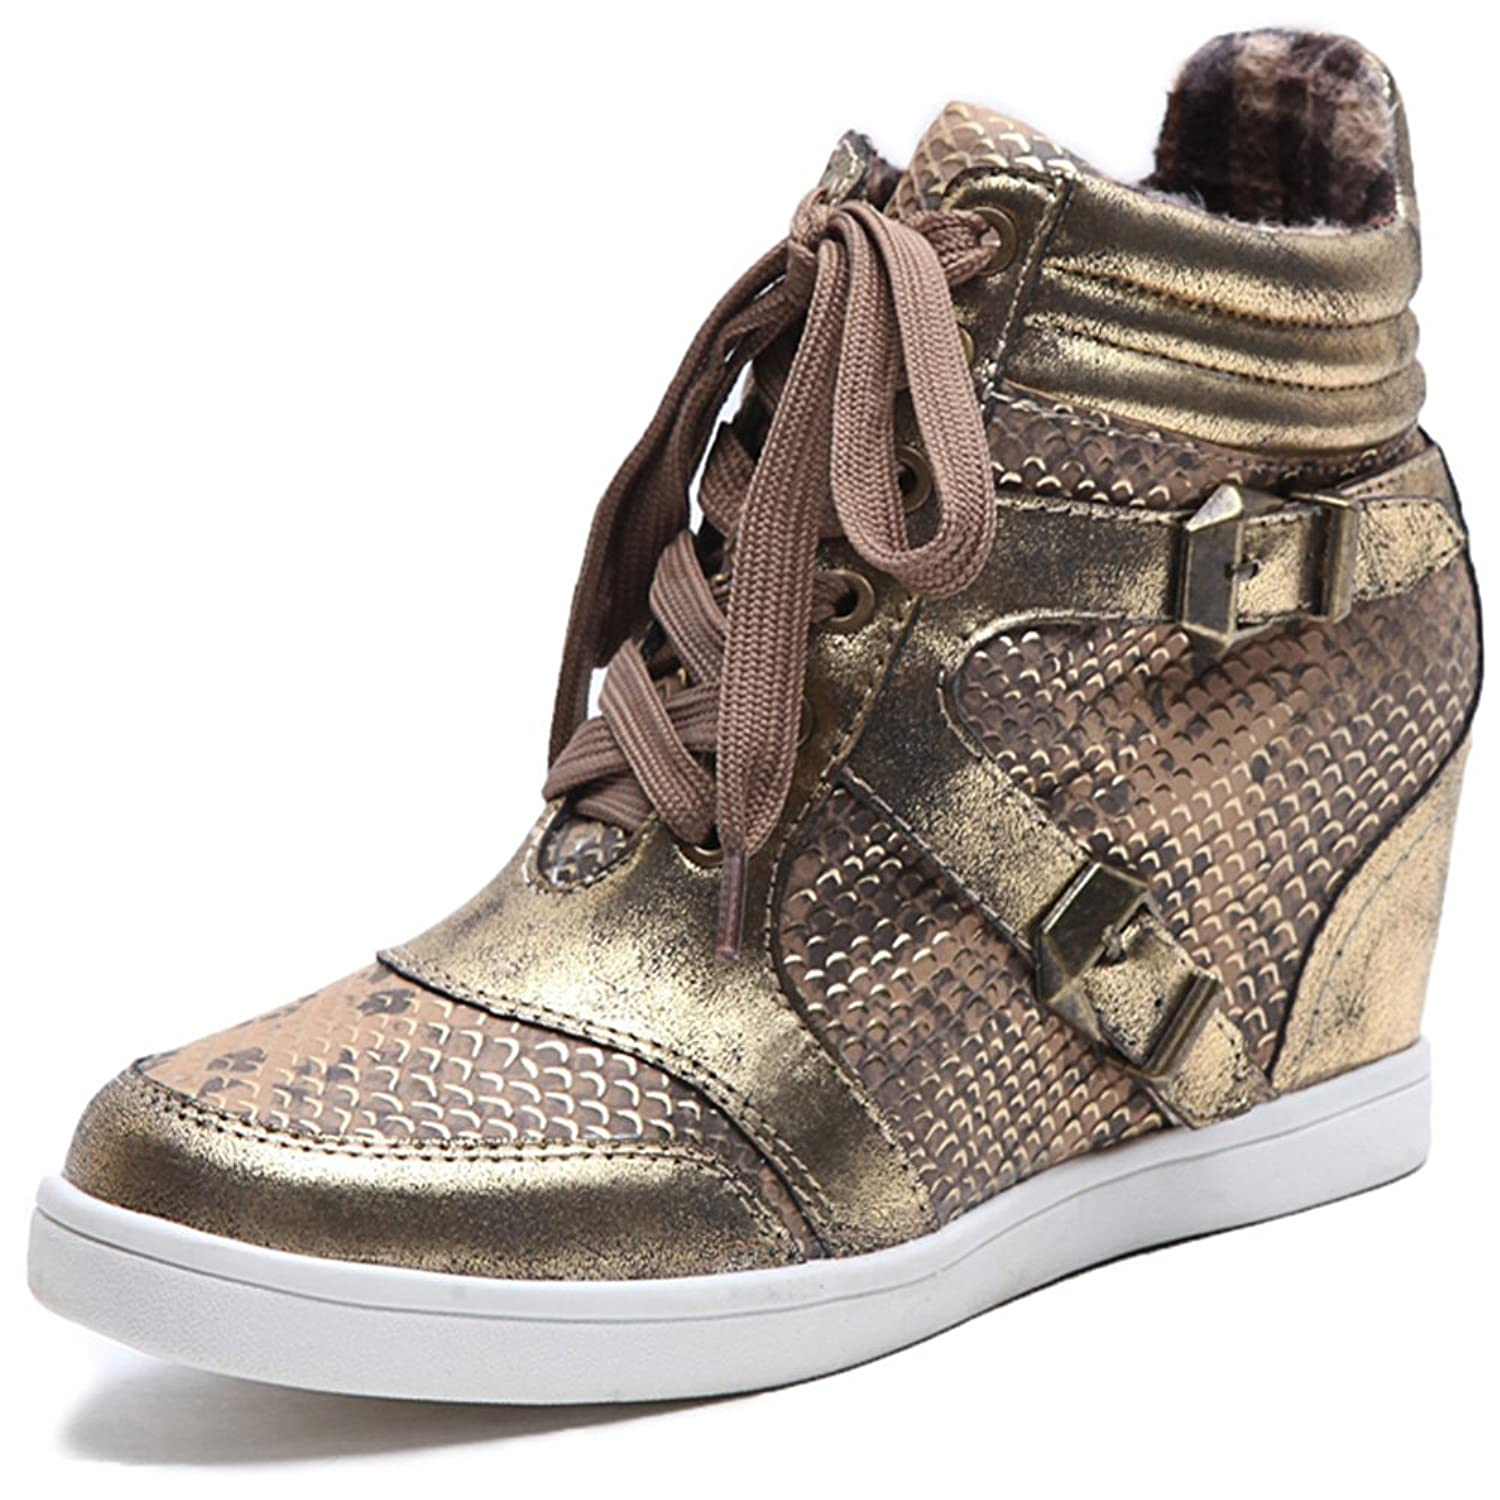 Alexis Leroy Warm Women's Wedge Heel Lace-up Glitter Snake-print Pattern Snow Sneakers